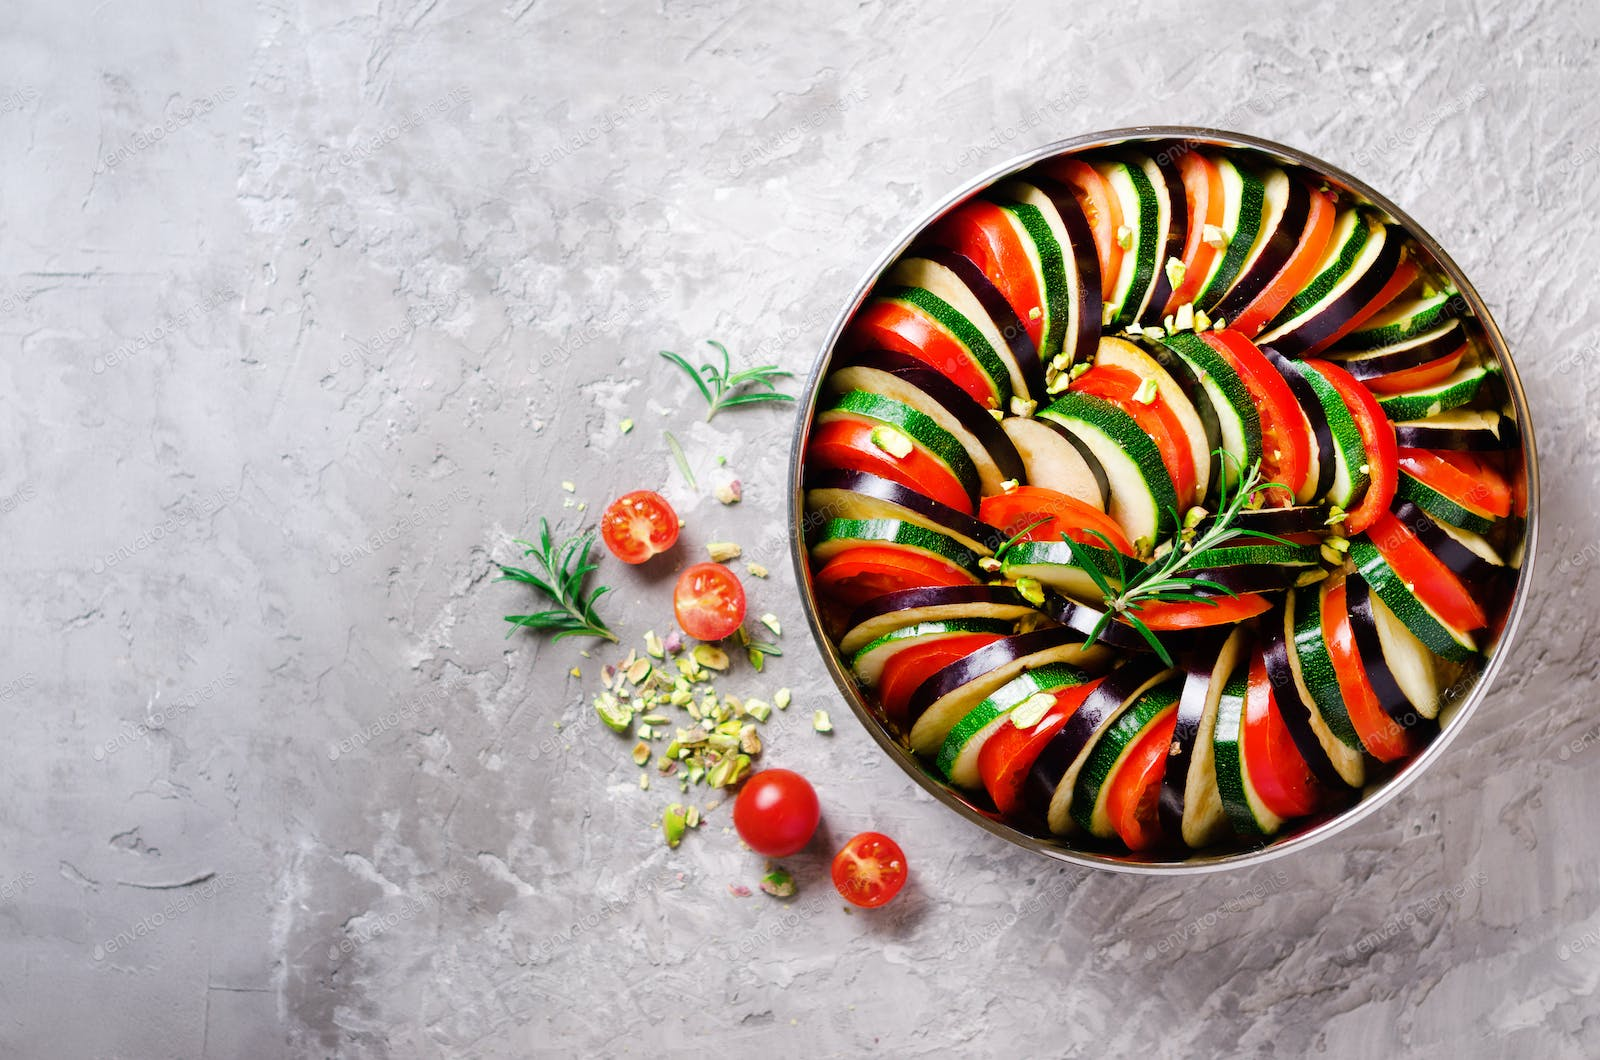 Ratatouille Traditional Homemade Vegetable Dish Vegetarian Vegan Food Copy Space Banner Photo By Jchizhe On Envato Elements